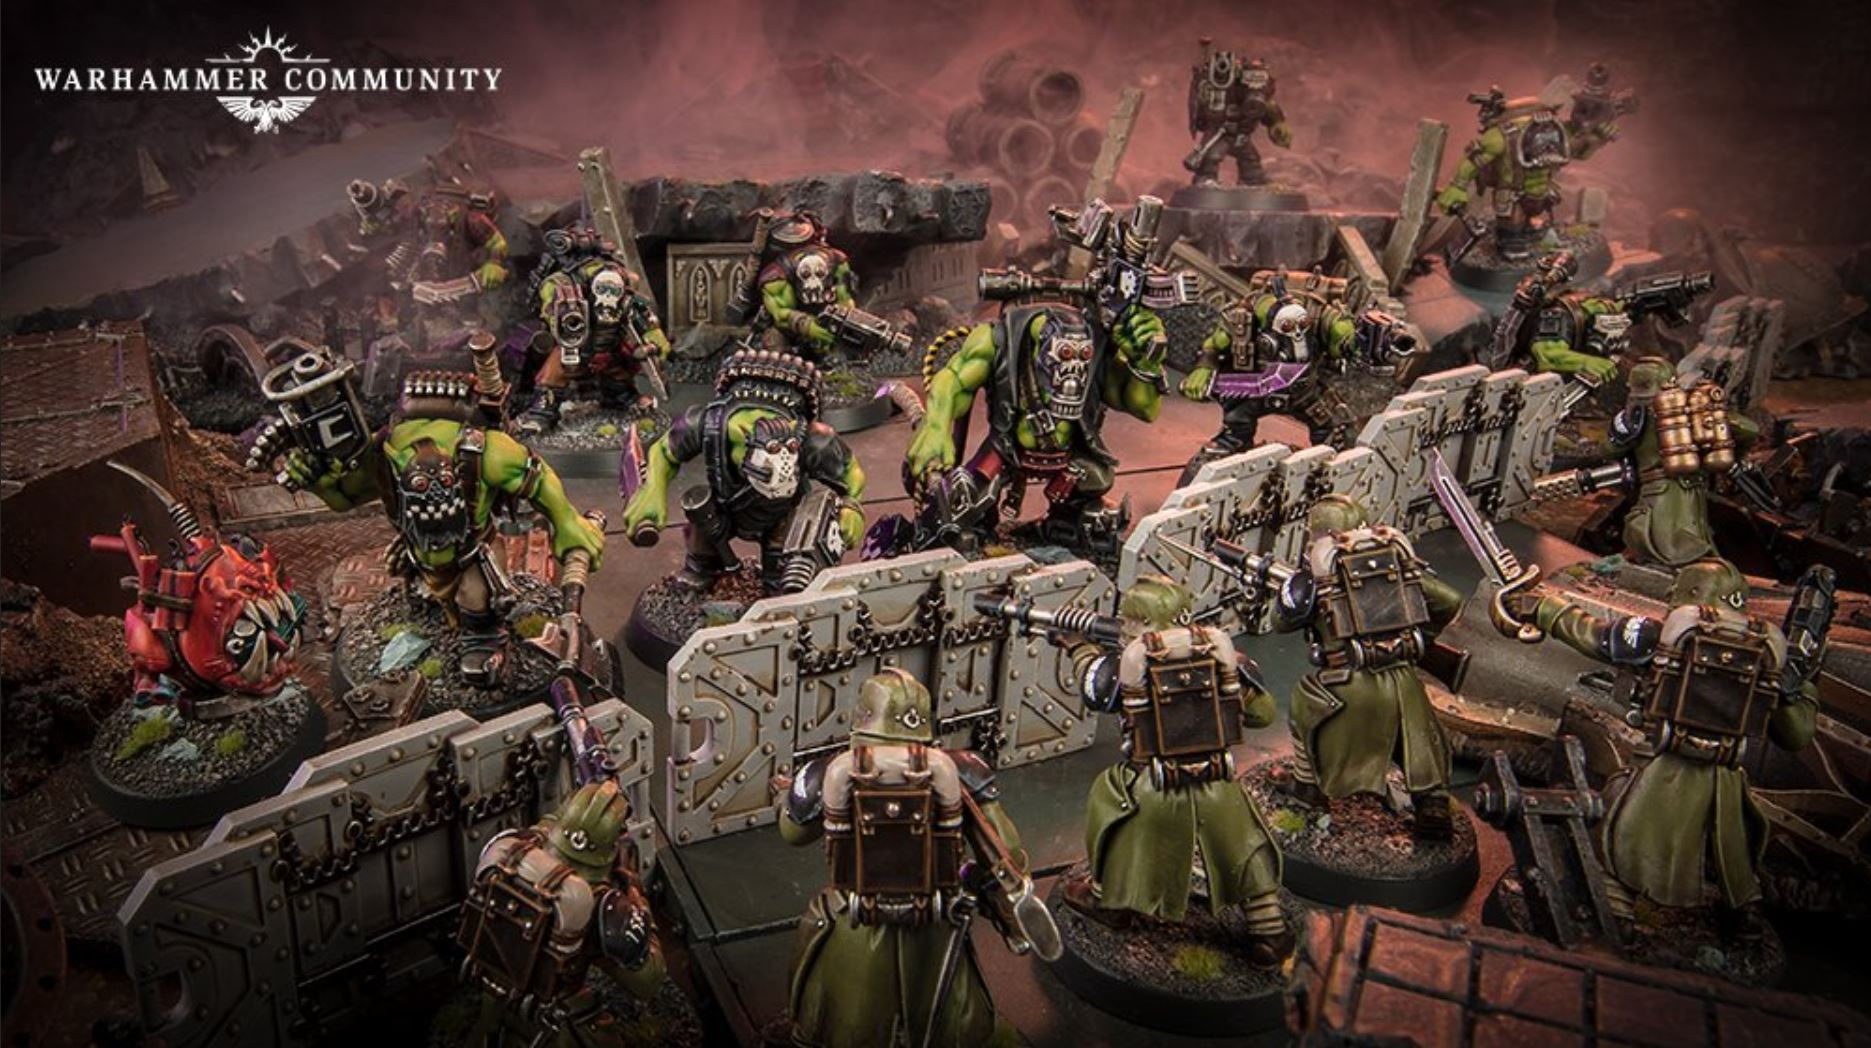 A gunline of Krieg in green holds back an onrushing group of Orks along a barricade. They've brought an explosive animal with them.